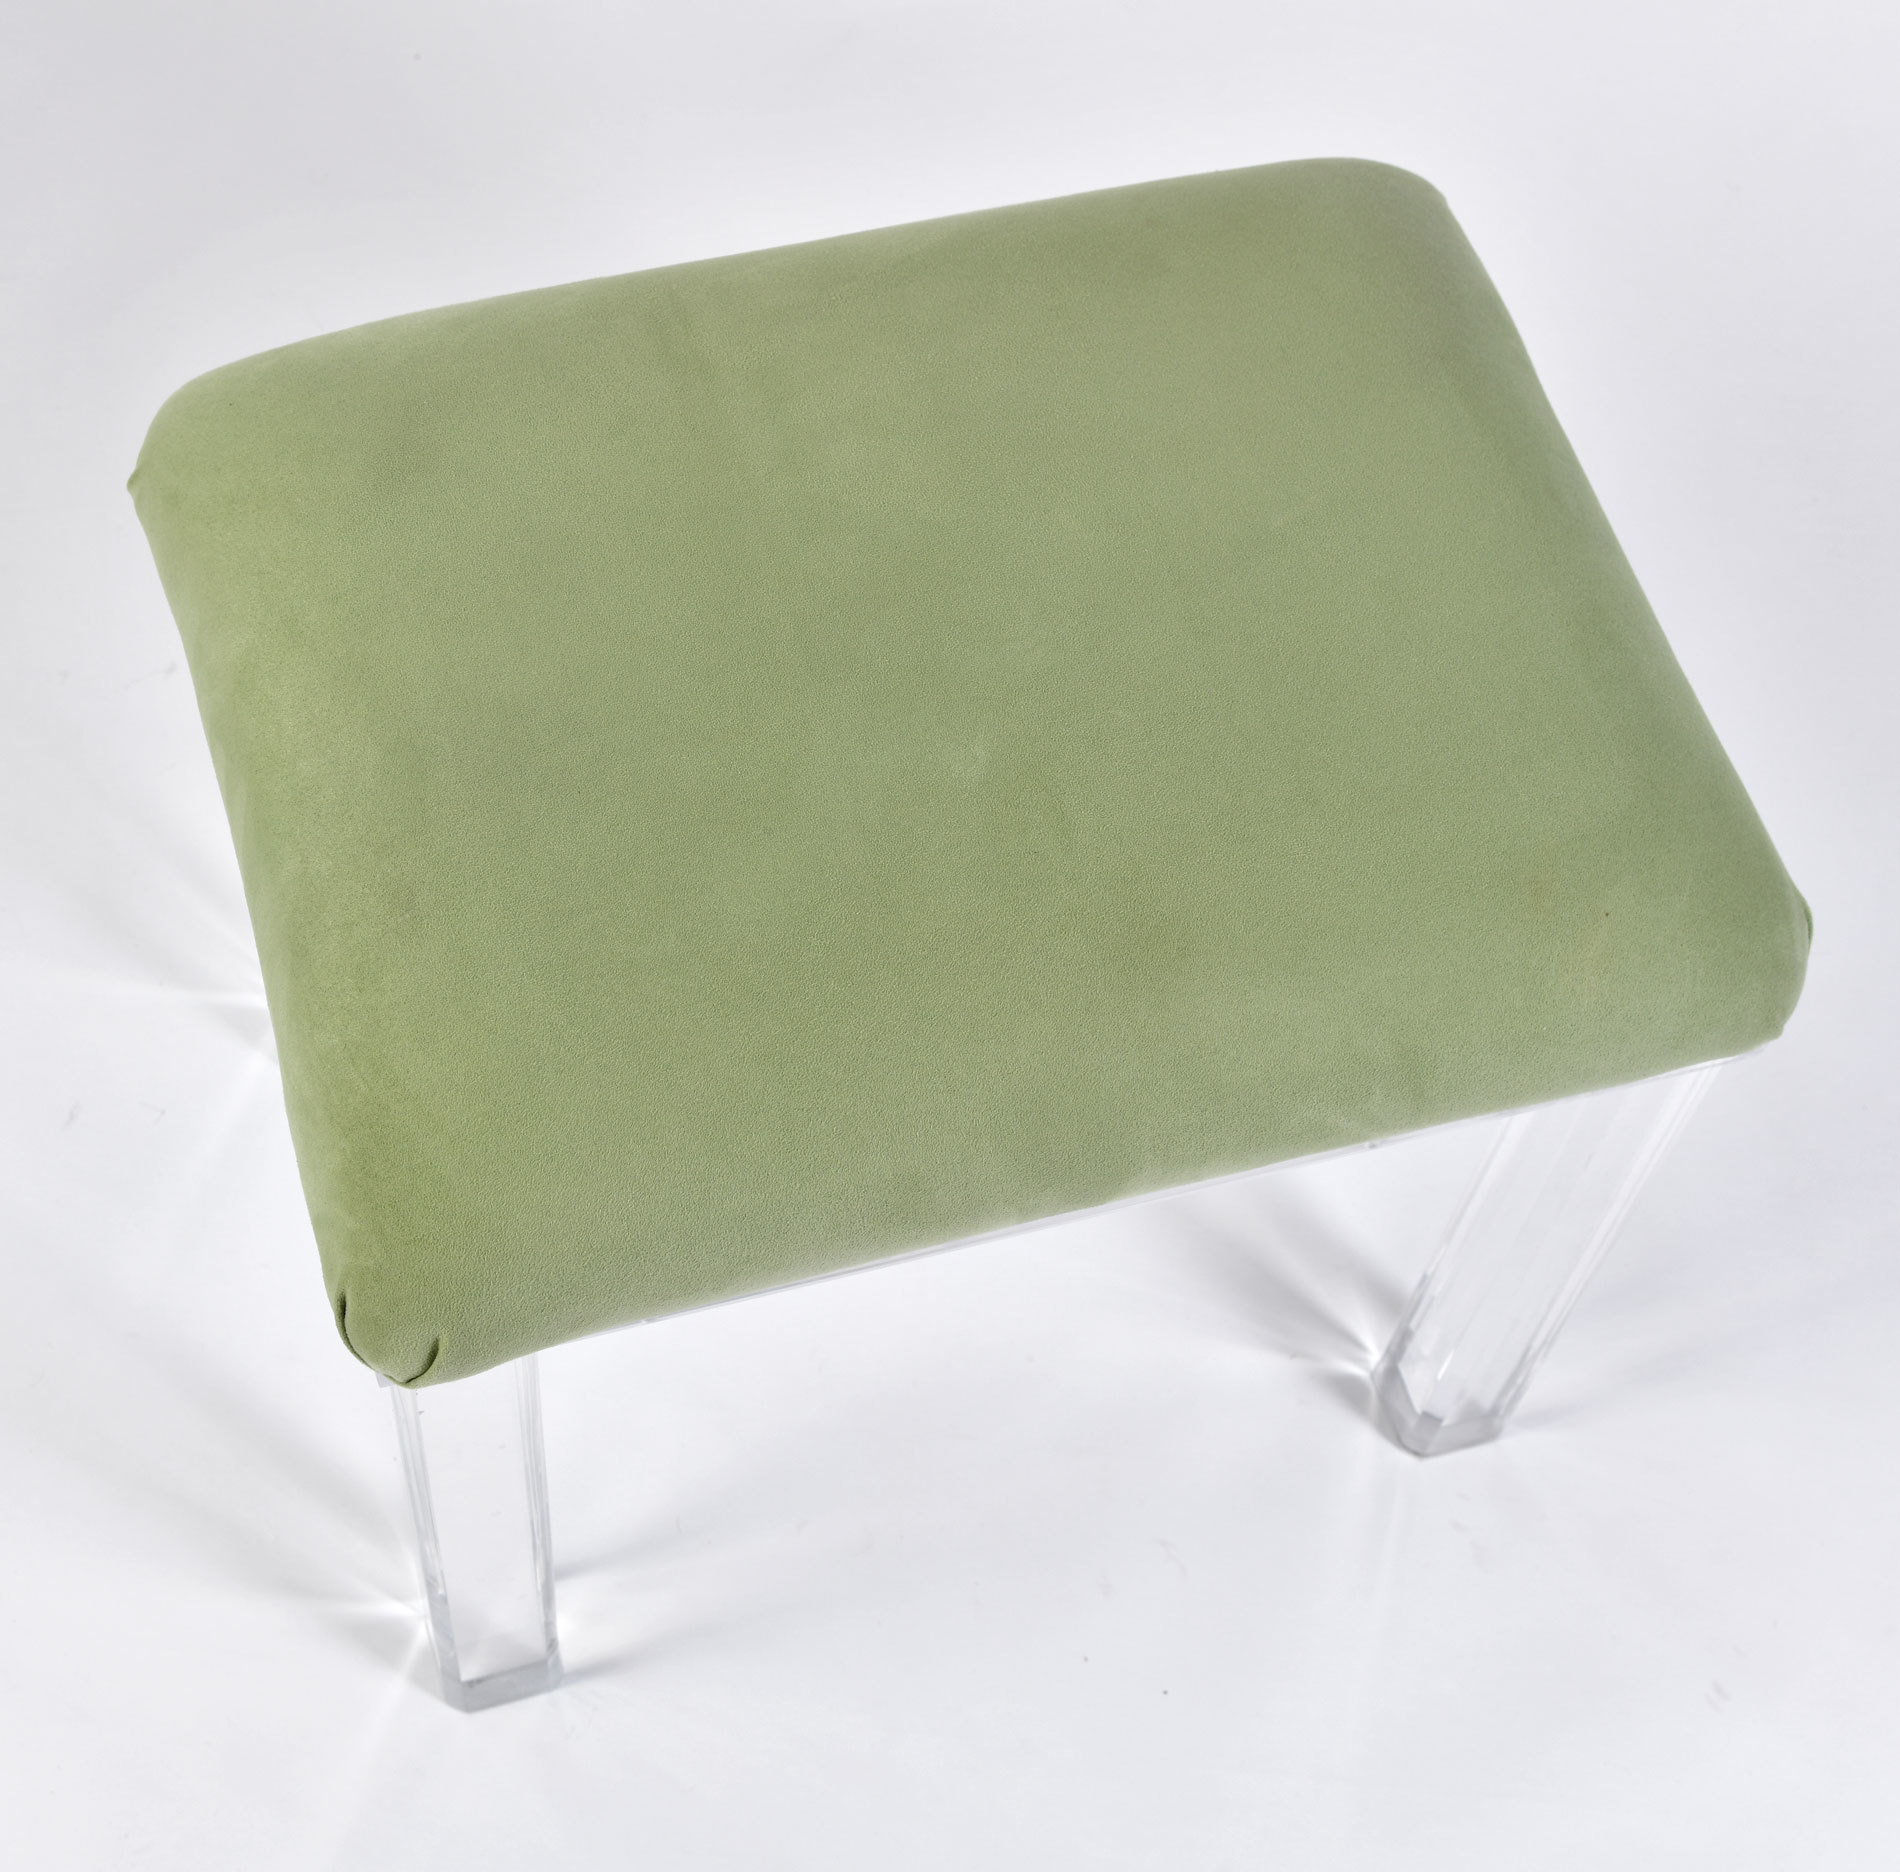 The image for Carmichael Lucite Stool 05